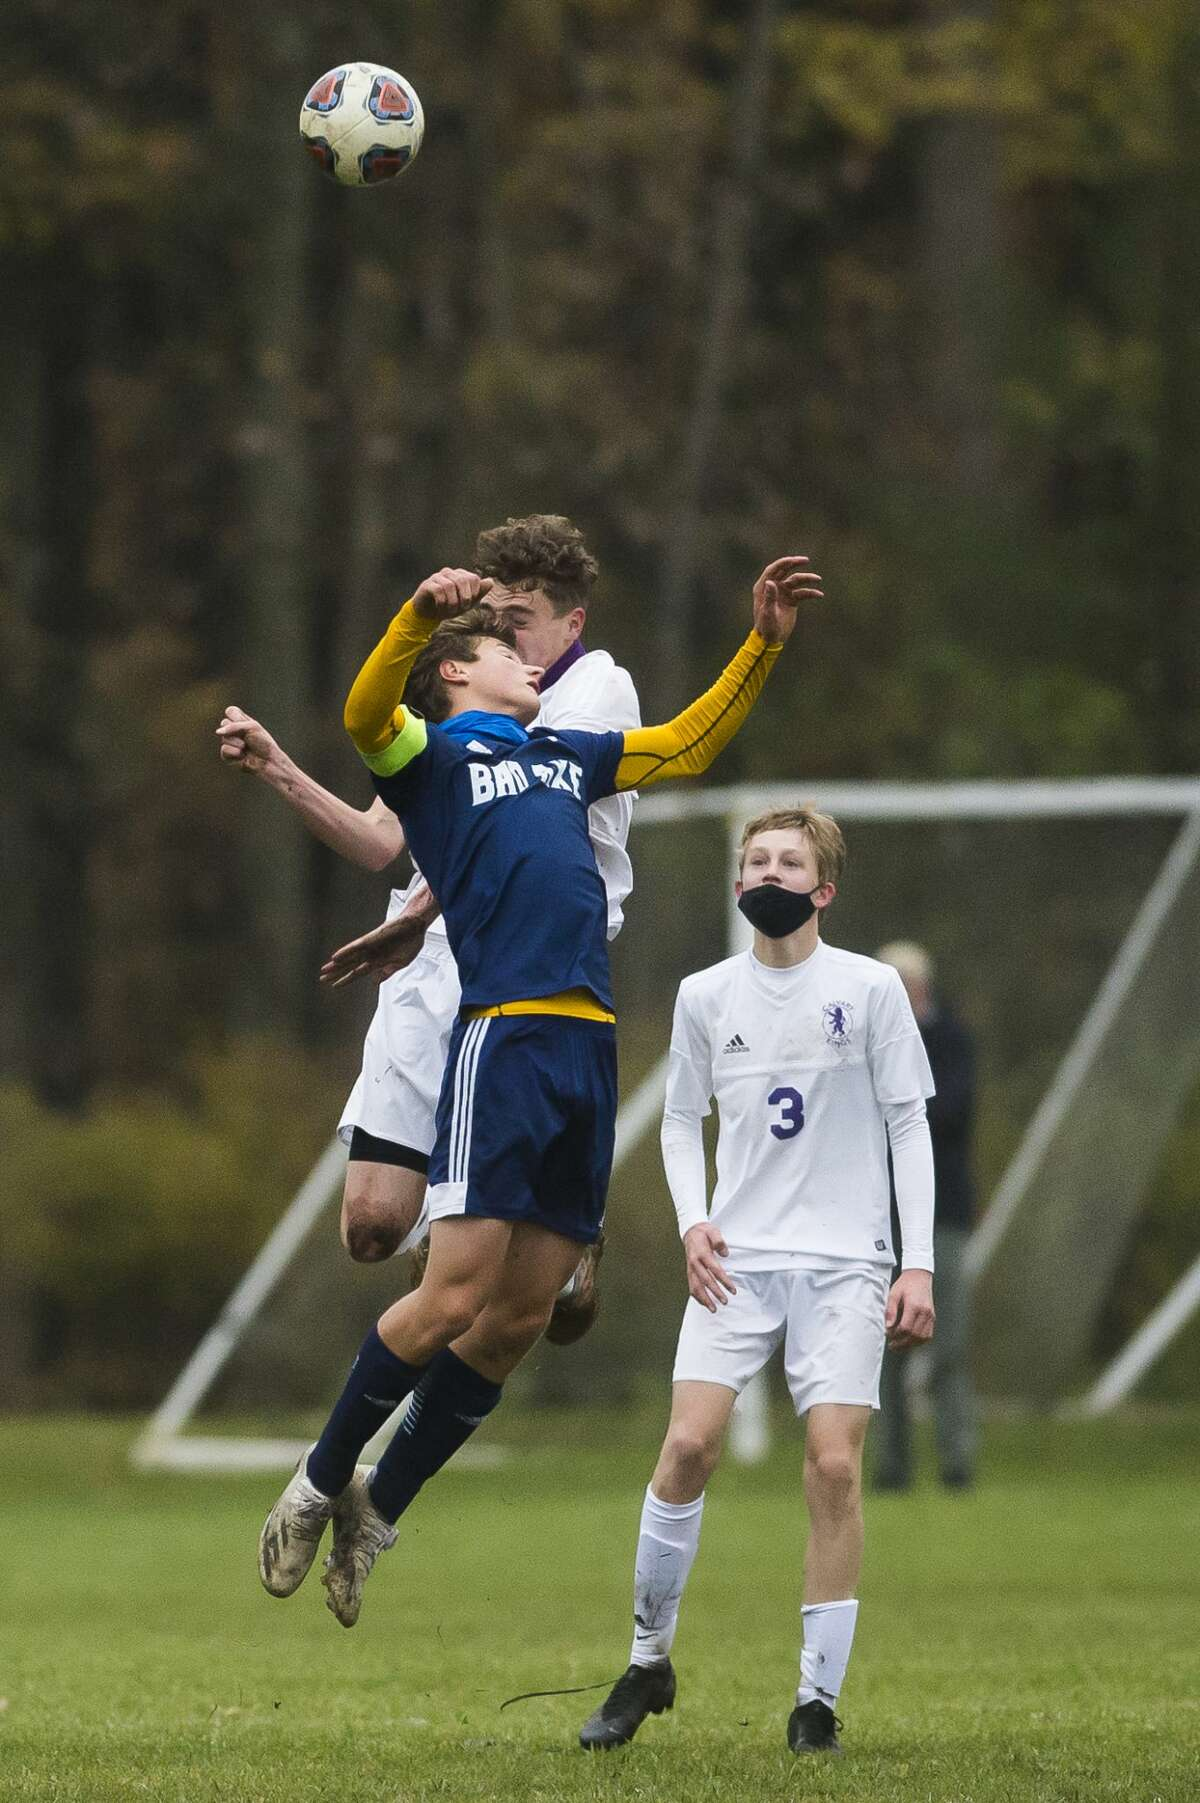 Bad Axe's Nick Errer and Calvary Baptist's Toby Stauffer jump up for a header during their district final Thursday, Oct. 22, 2020 at Calvary Baptist Academy. The Bad Axe boys soccer team captured its third straight district championship on Thursday after defeating host Midland Calvary Baptist, 4-1.